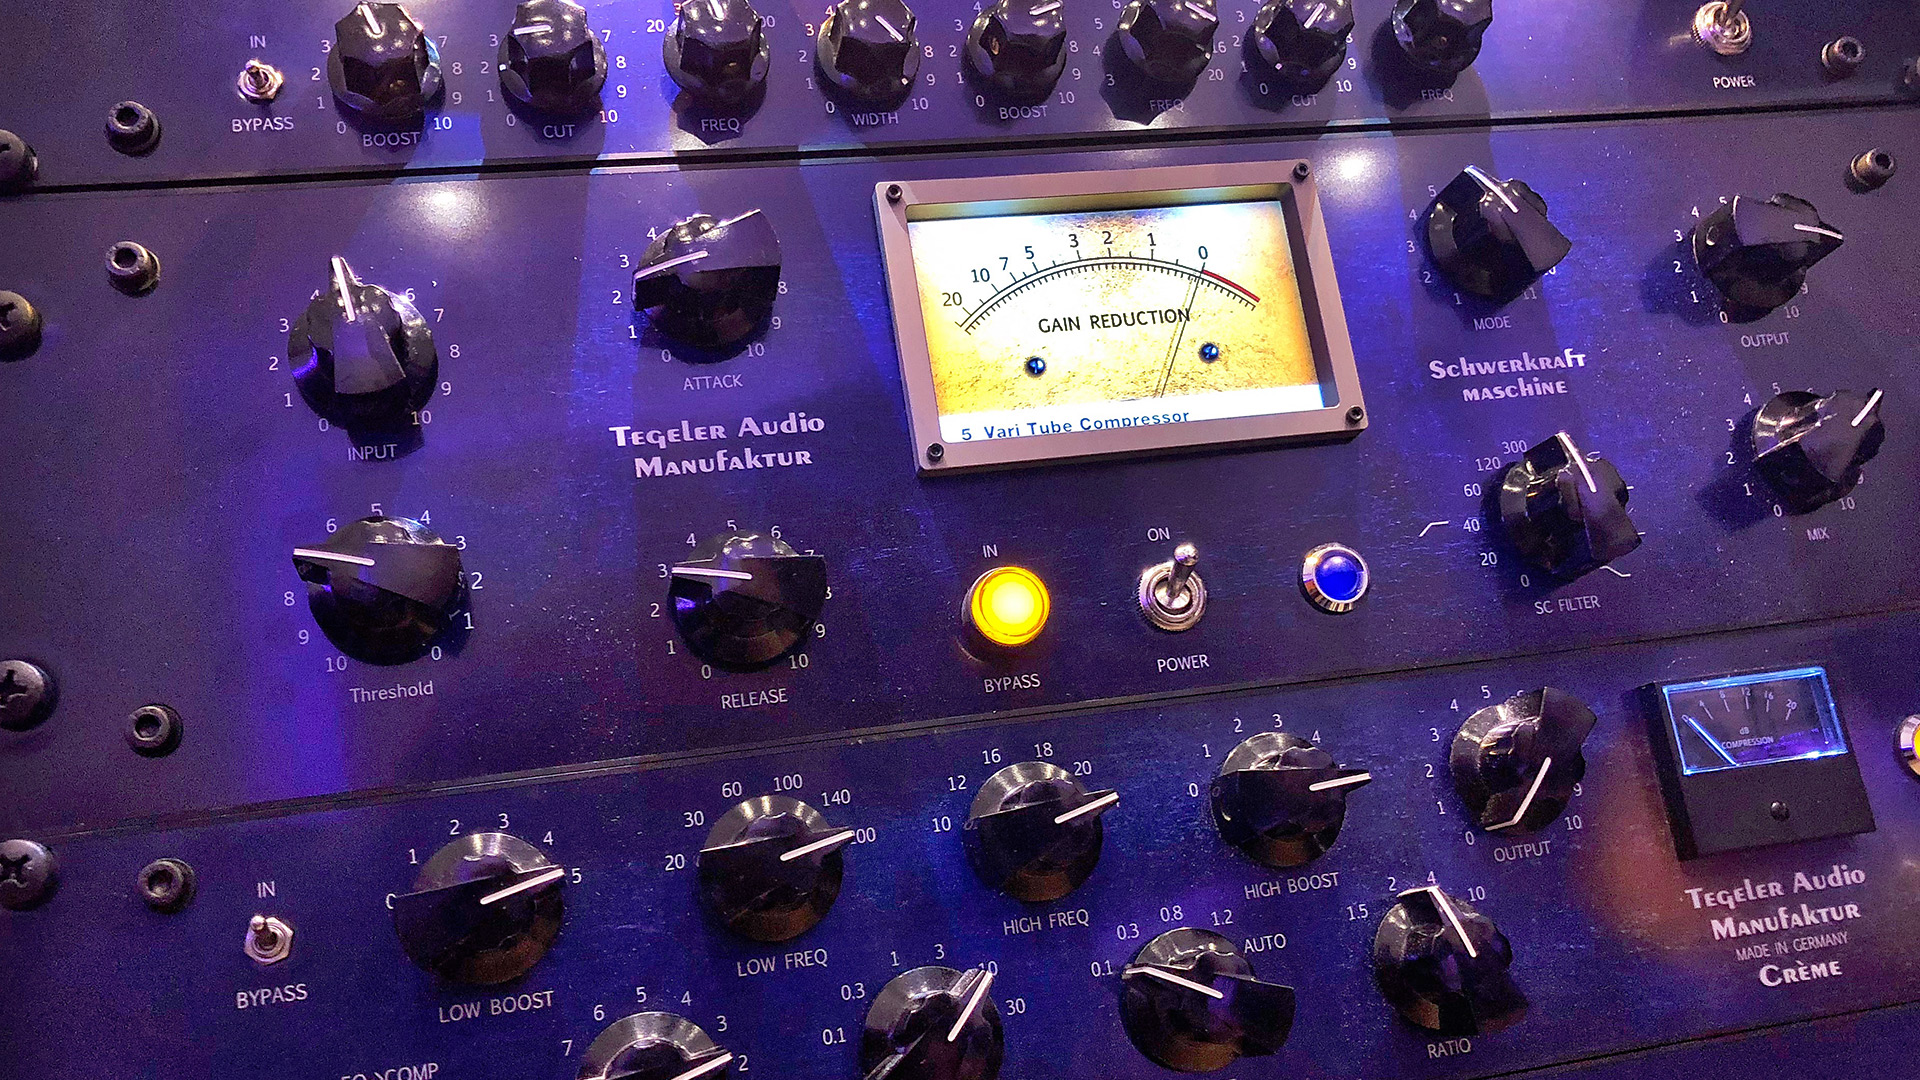 free-online-music-mastering-using-real-studio-analog-studio-gear-tegeler-audio.jpg